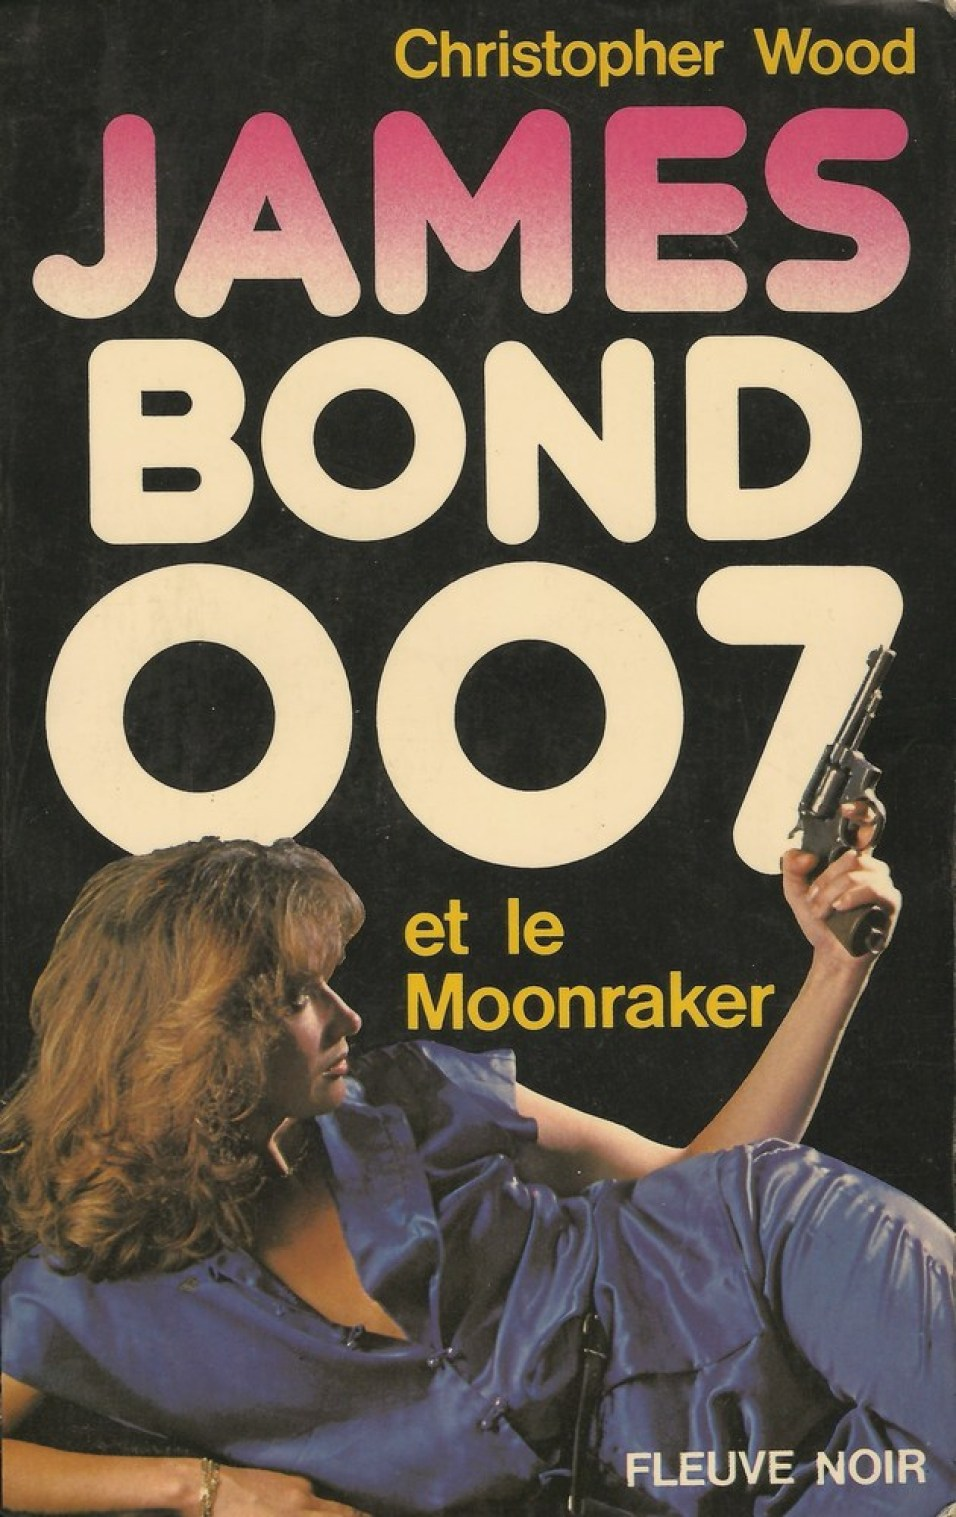 Novelisation-2 Moonraker